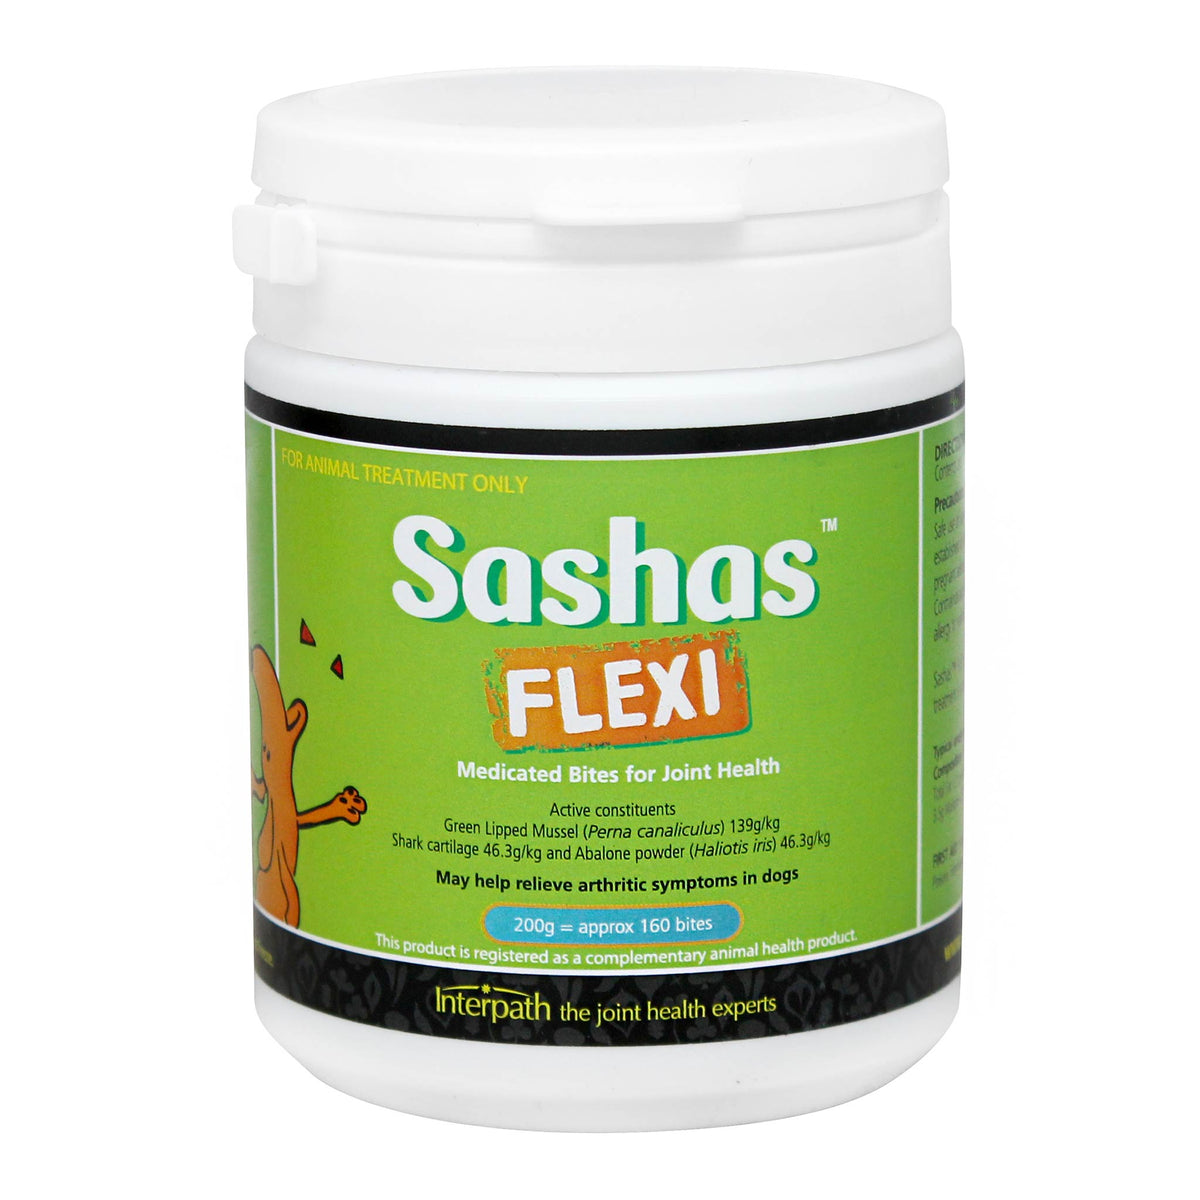 Sashas Flexi Medicated Bites for Joint Health